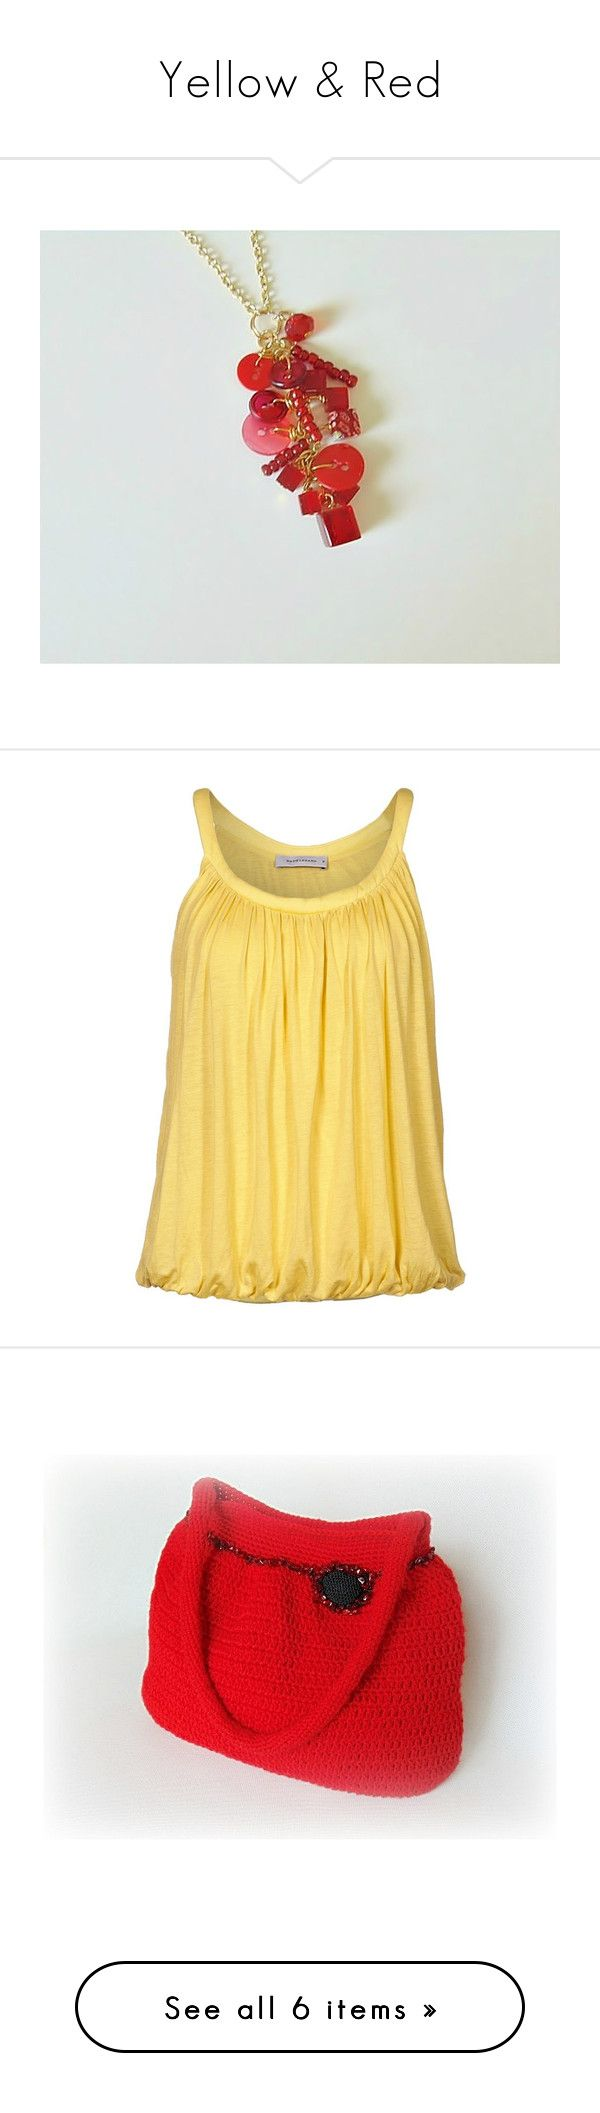 """""""Yellow & Red"""" by styledonna on Polyvore featuring jewelry, pendants, tops, shirts, tank tops, yellow, tanks, women's tops, yellow shirt i yellow tank top"""